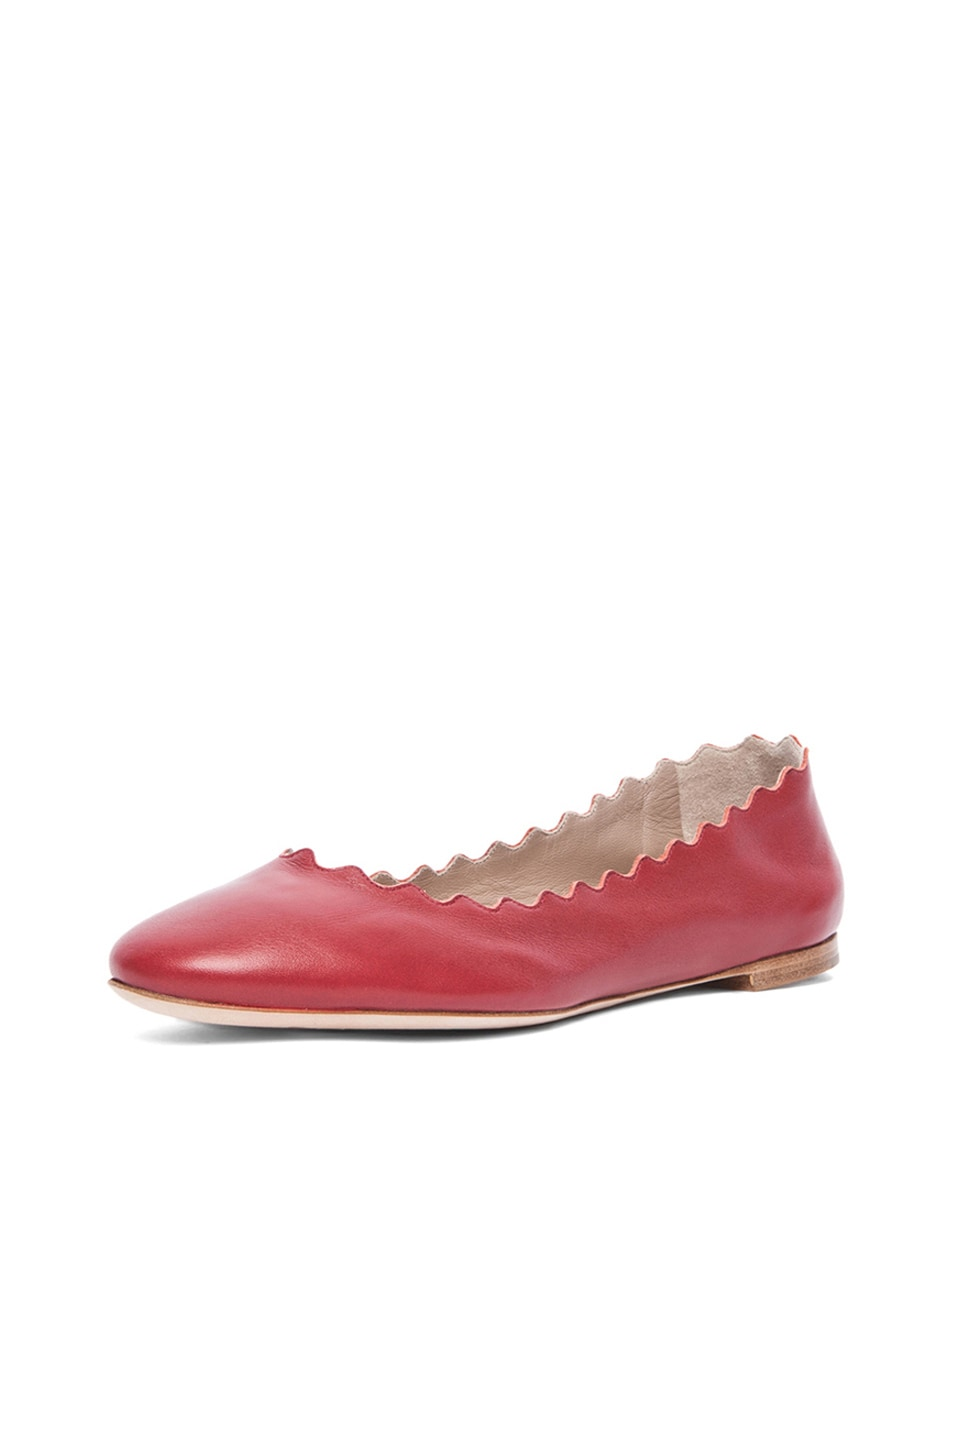 Image 2 of Chloe Leather Scalloped Flats in Royal Red